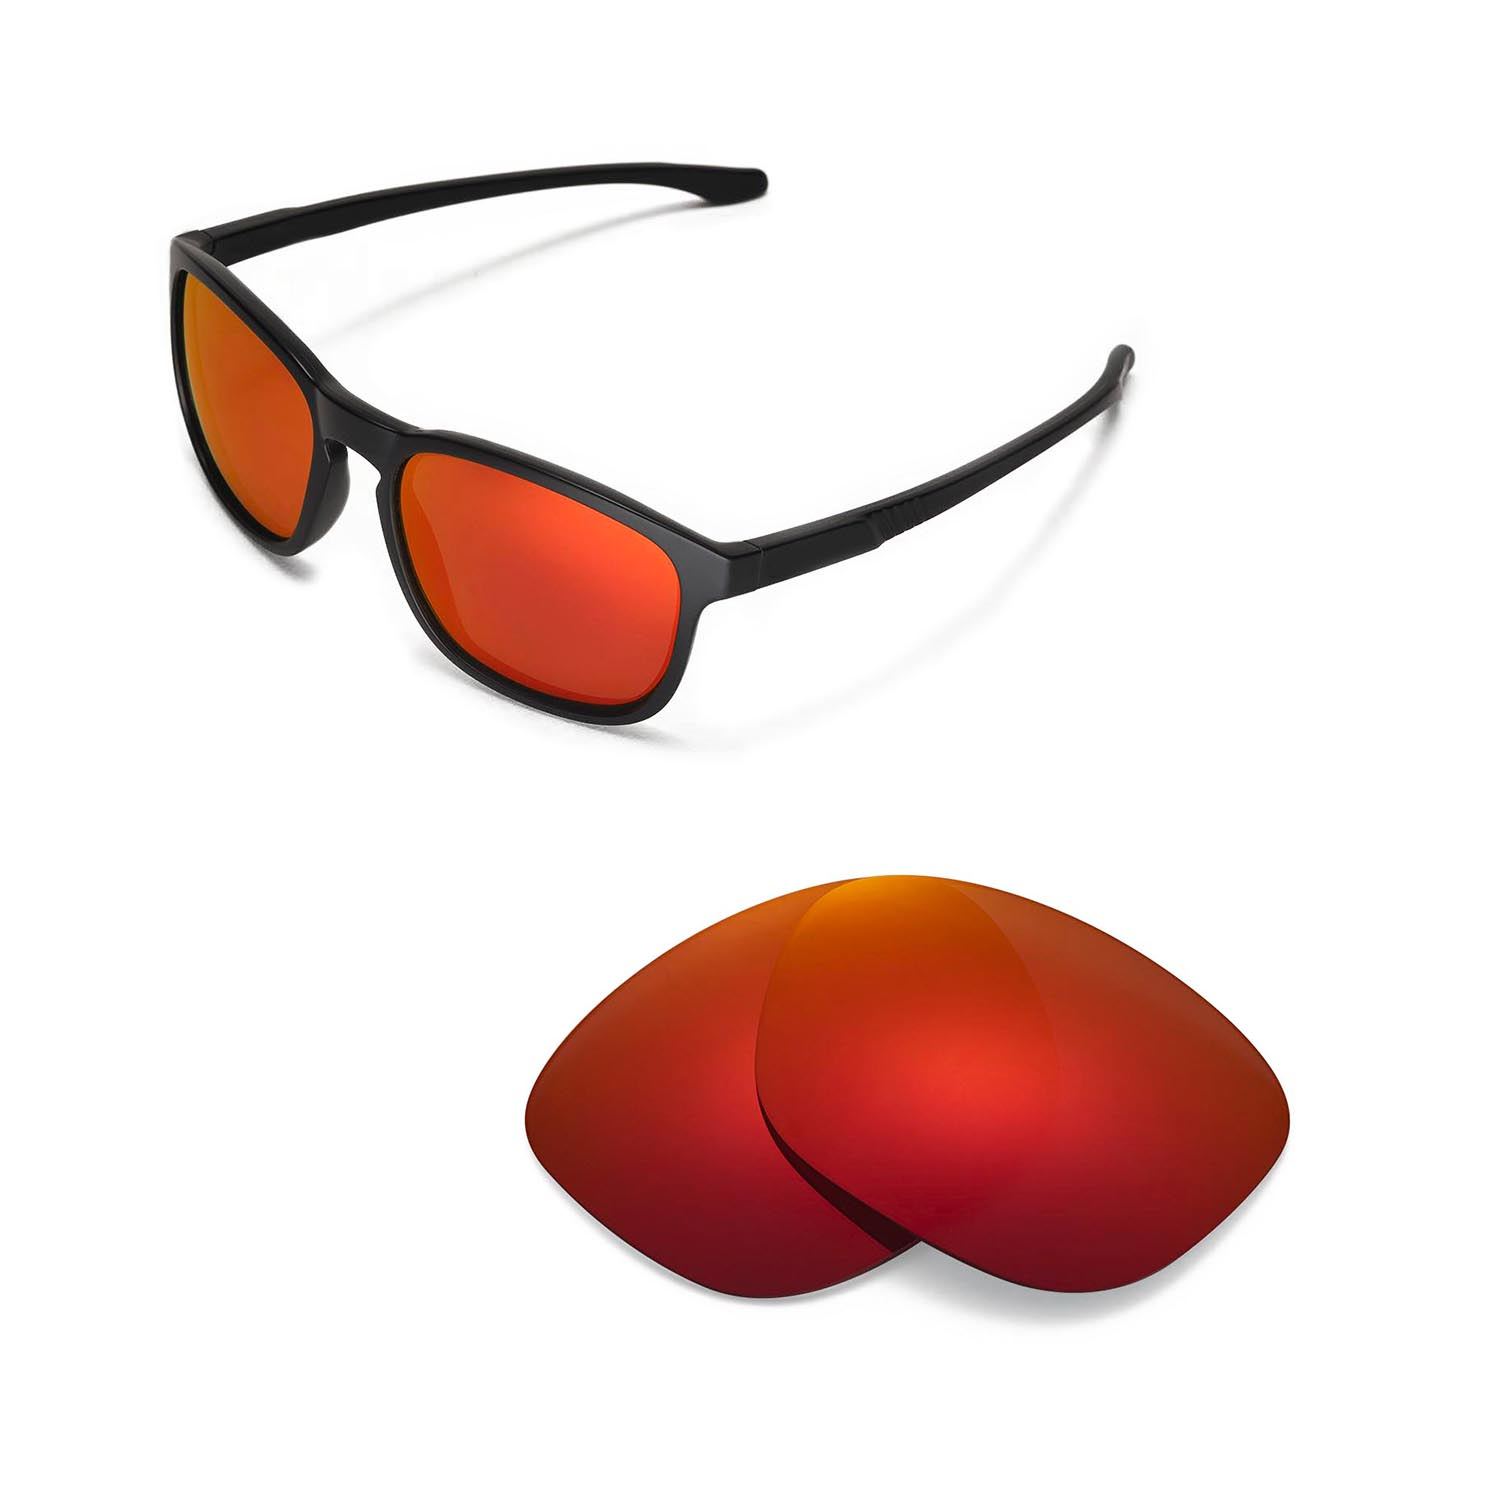 15a6f43ff4 Details about New Walleva Polarized Fire Red Lenses For Oakley Enduro  Sunglasses